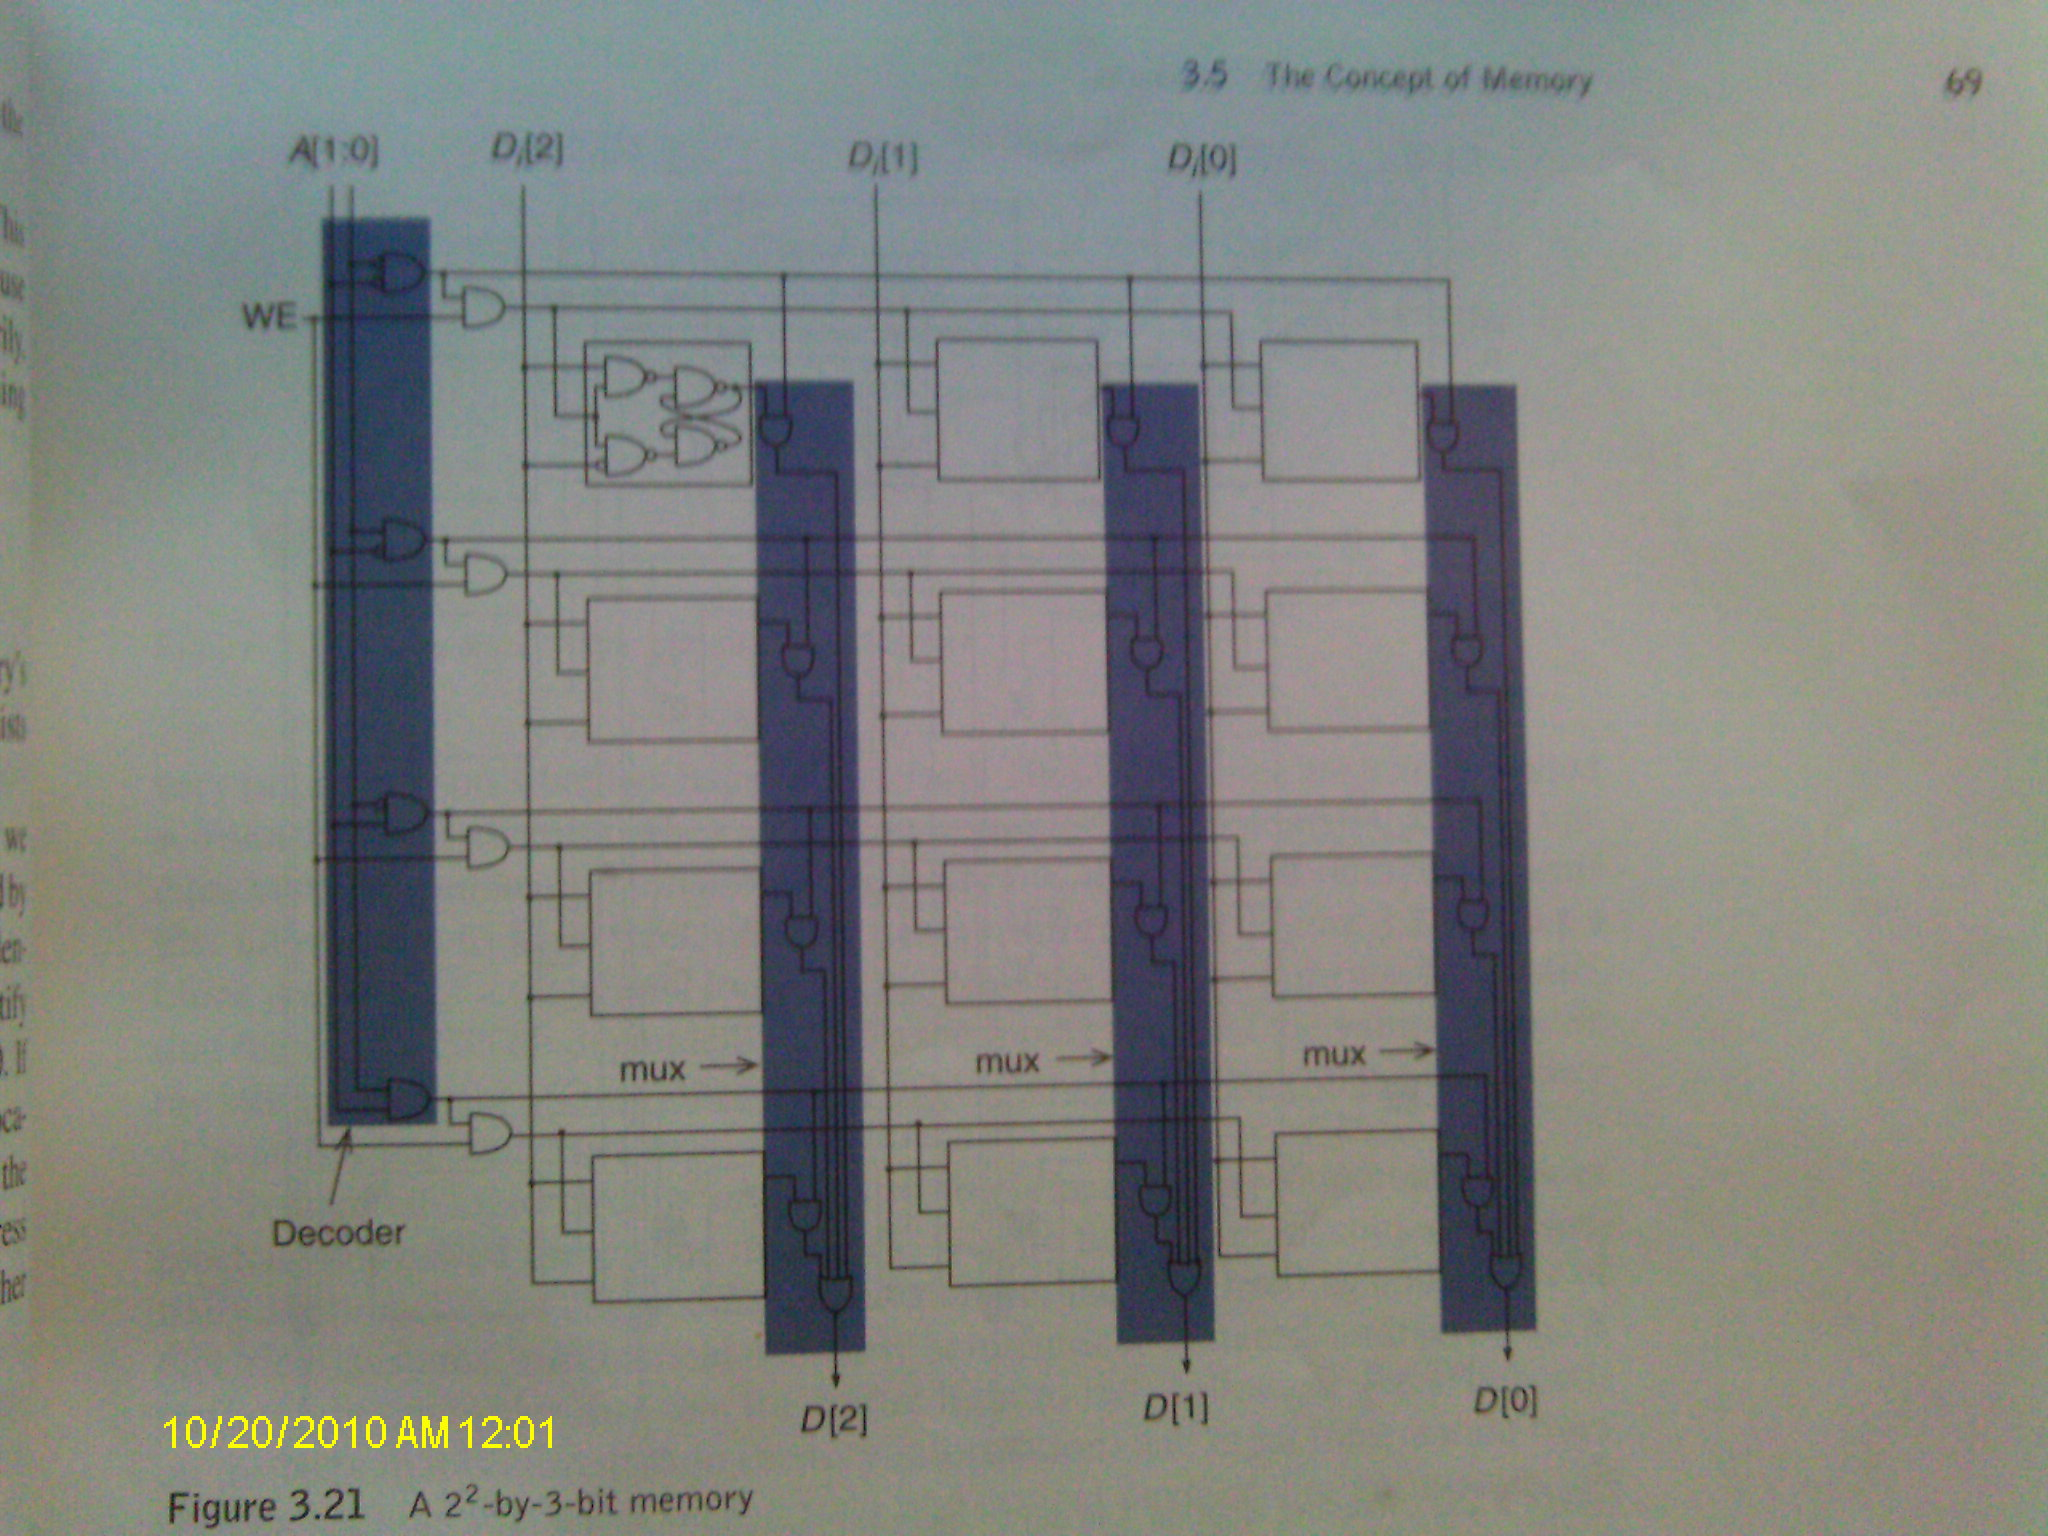 Using Figure 3.21, the diagram of the 4-entry, 22-